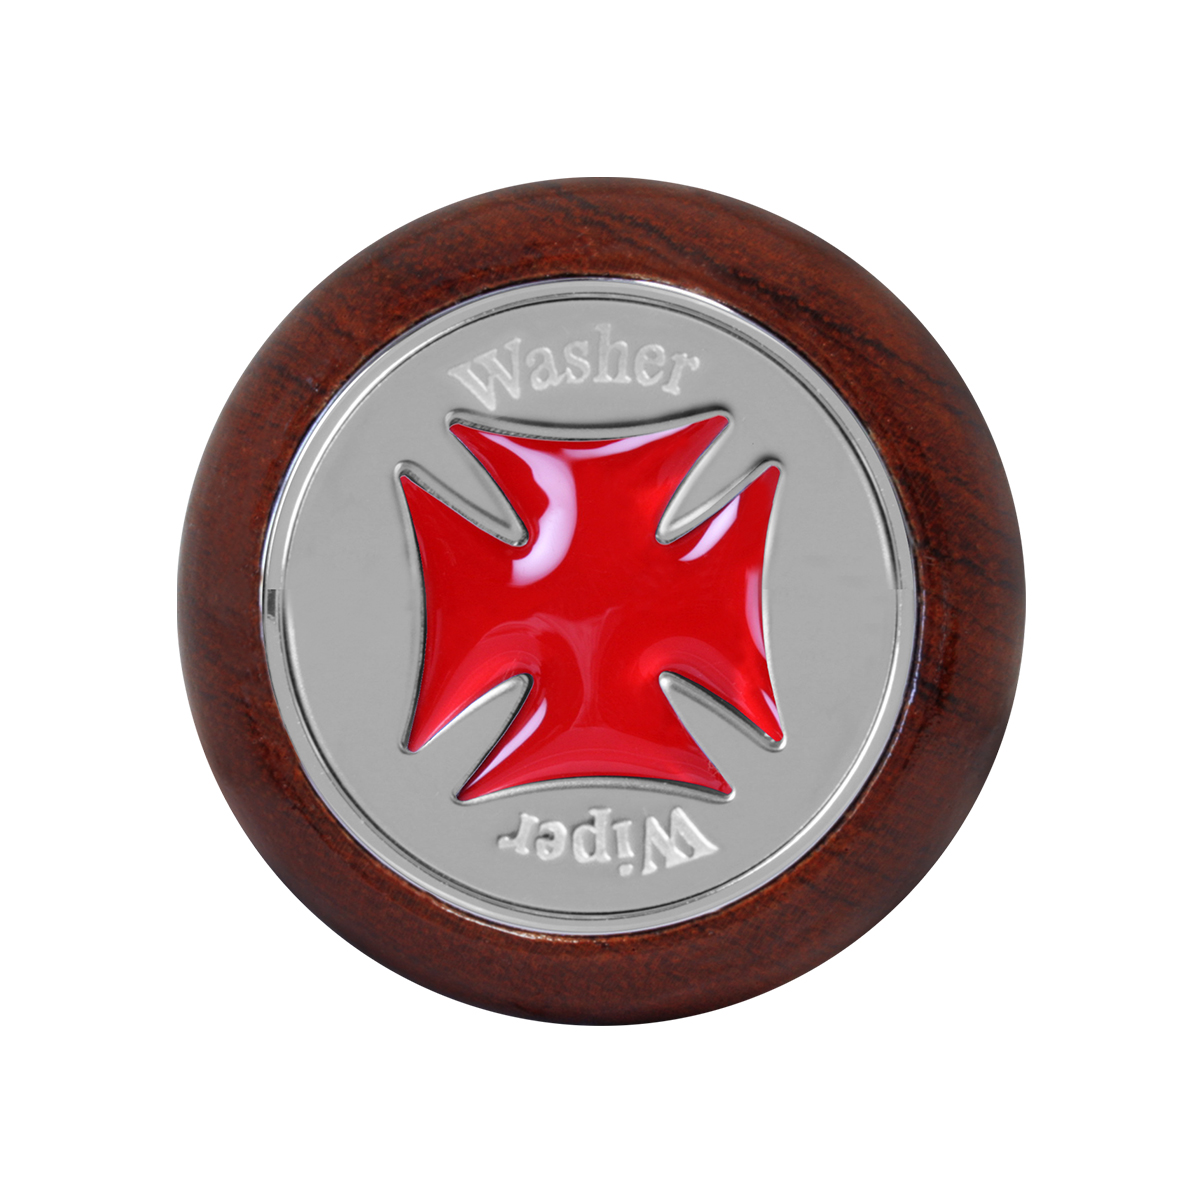 95445 Red Iron Cross Dashboard Control Knob w/ Wiper/Washer Script